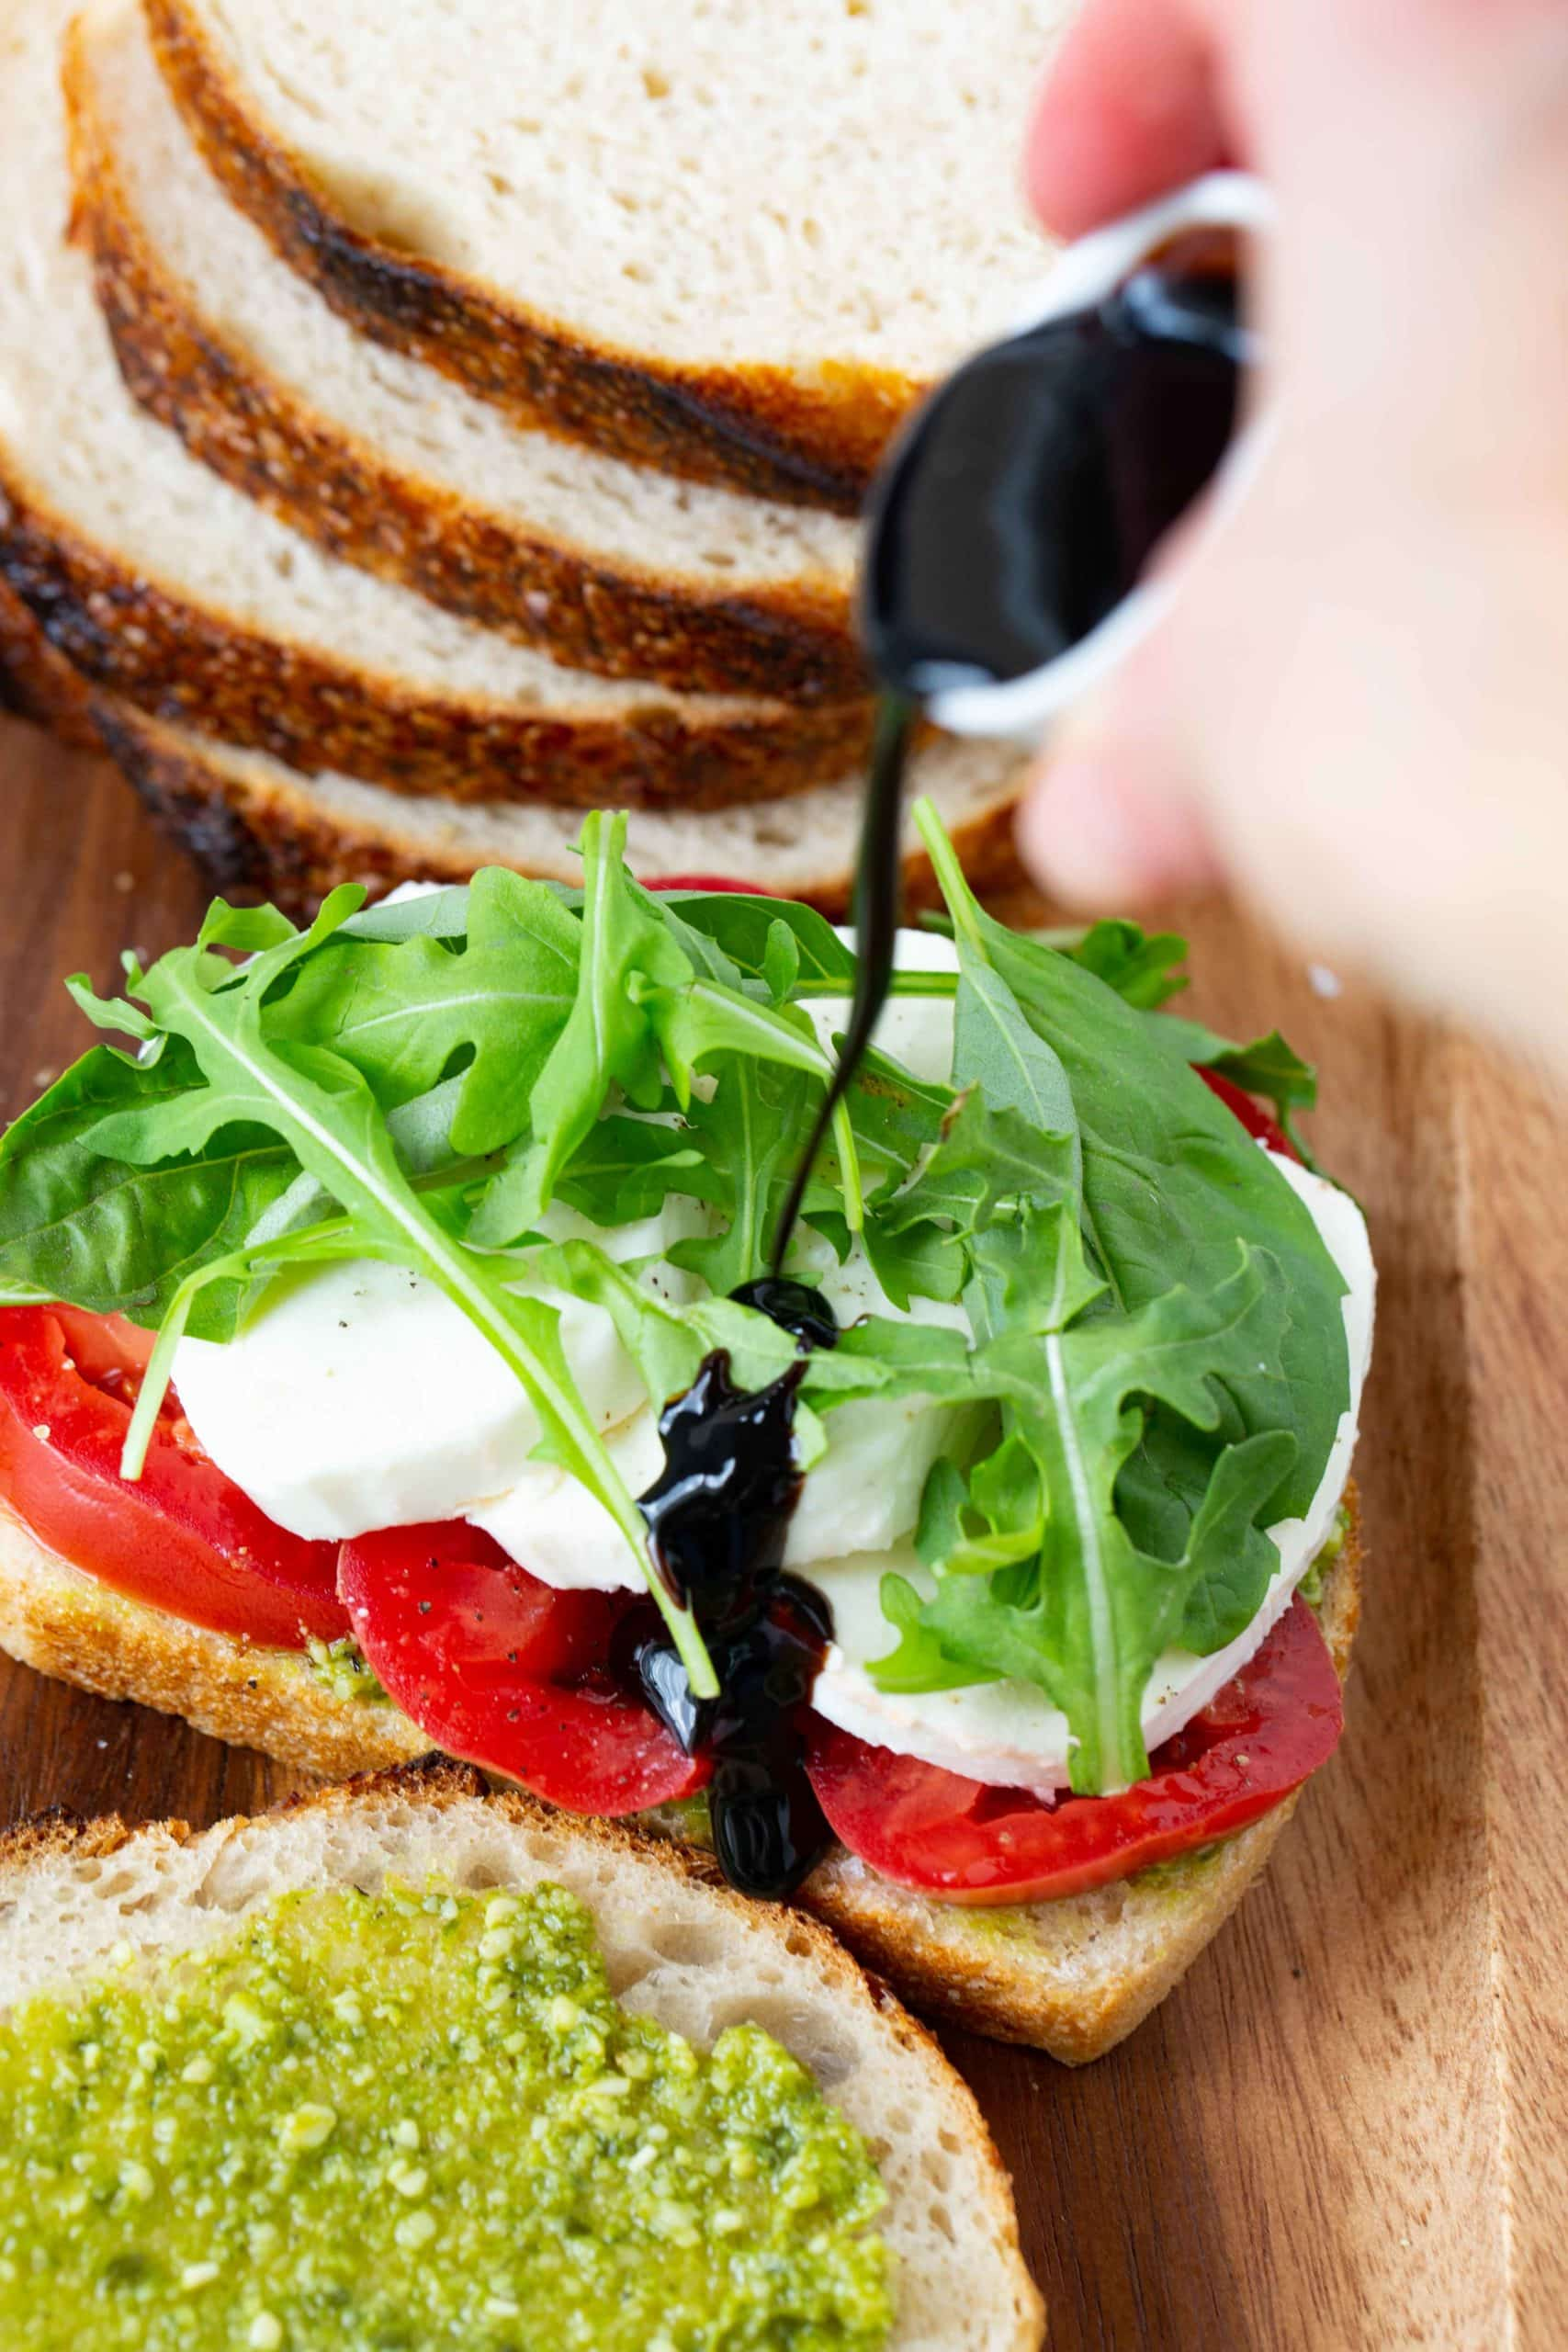 An opened sandwich with sliced tomatoes, sliced fresh mozzarella cheese, and arugula. A balsamic glaze is being drizzled over the top. There is another slice of bread that has been spread with pesto in front of it. there are four slices of bread stacked in the background.